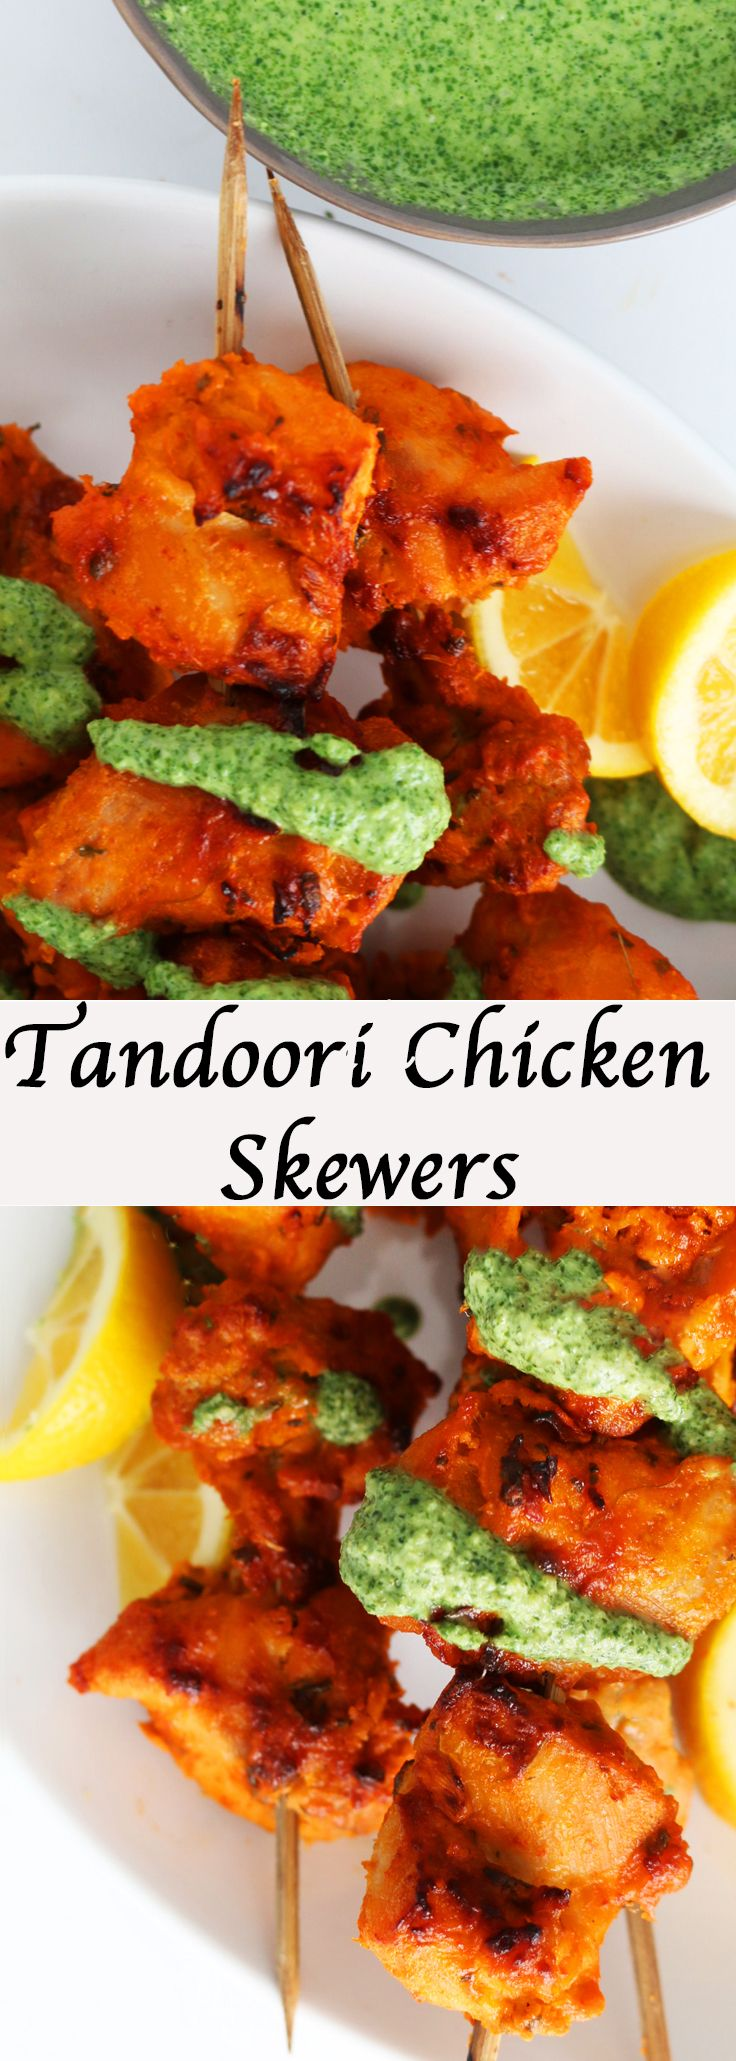 Broiled Tandoori Chicken Skewers with Cashew Mint Chutney #Indian #Indianrecipe #Spicy #chicken #appetizer #DINNER #lunch #party  http://www.kitchenathoskins.com/2017/03/13/tandoori-chicken-skewers-with-cashew-mint-chutney/